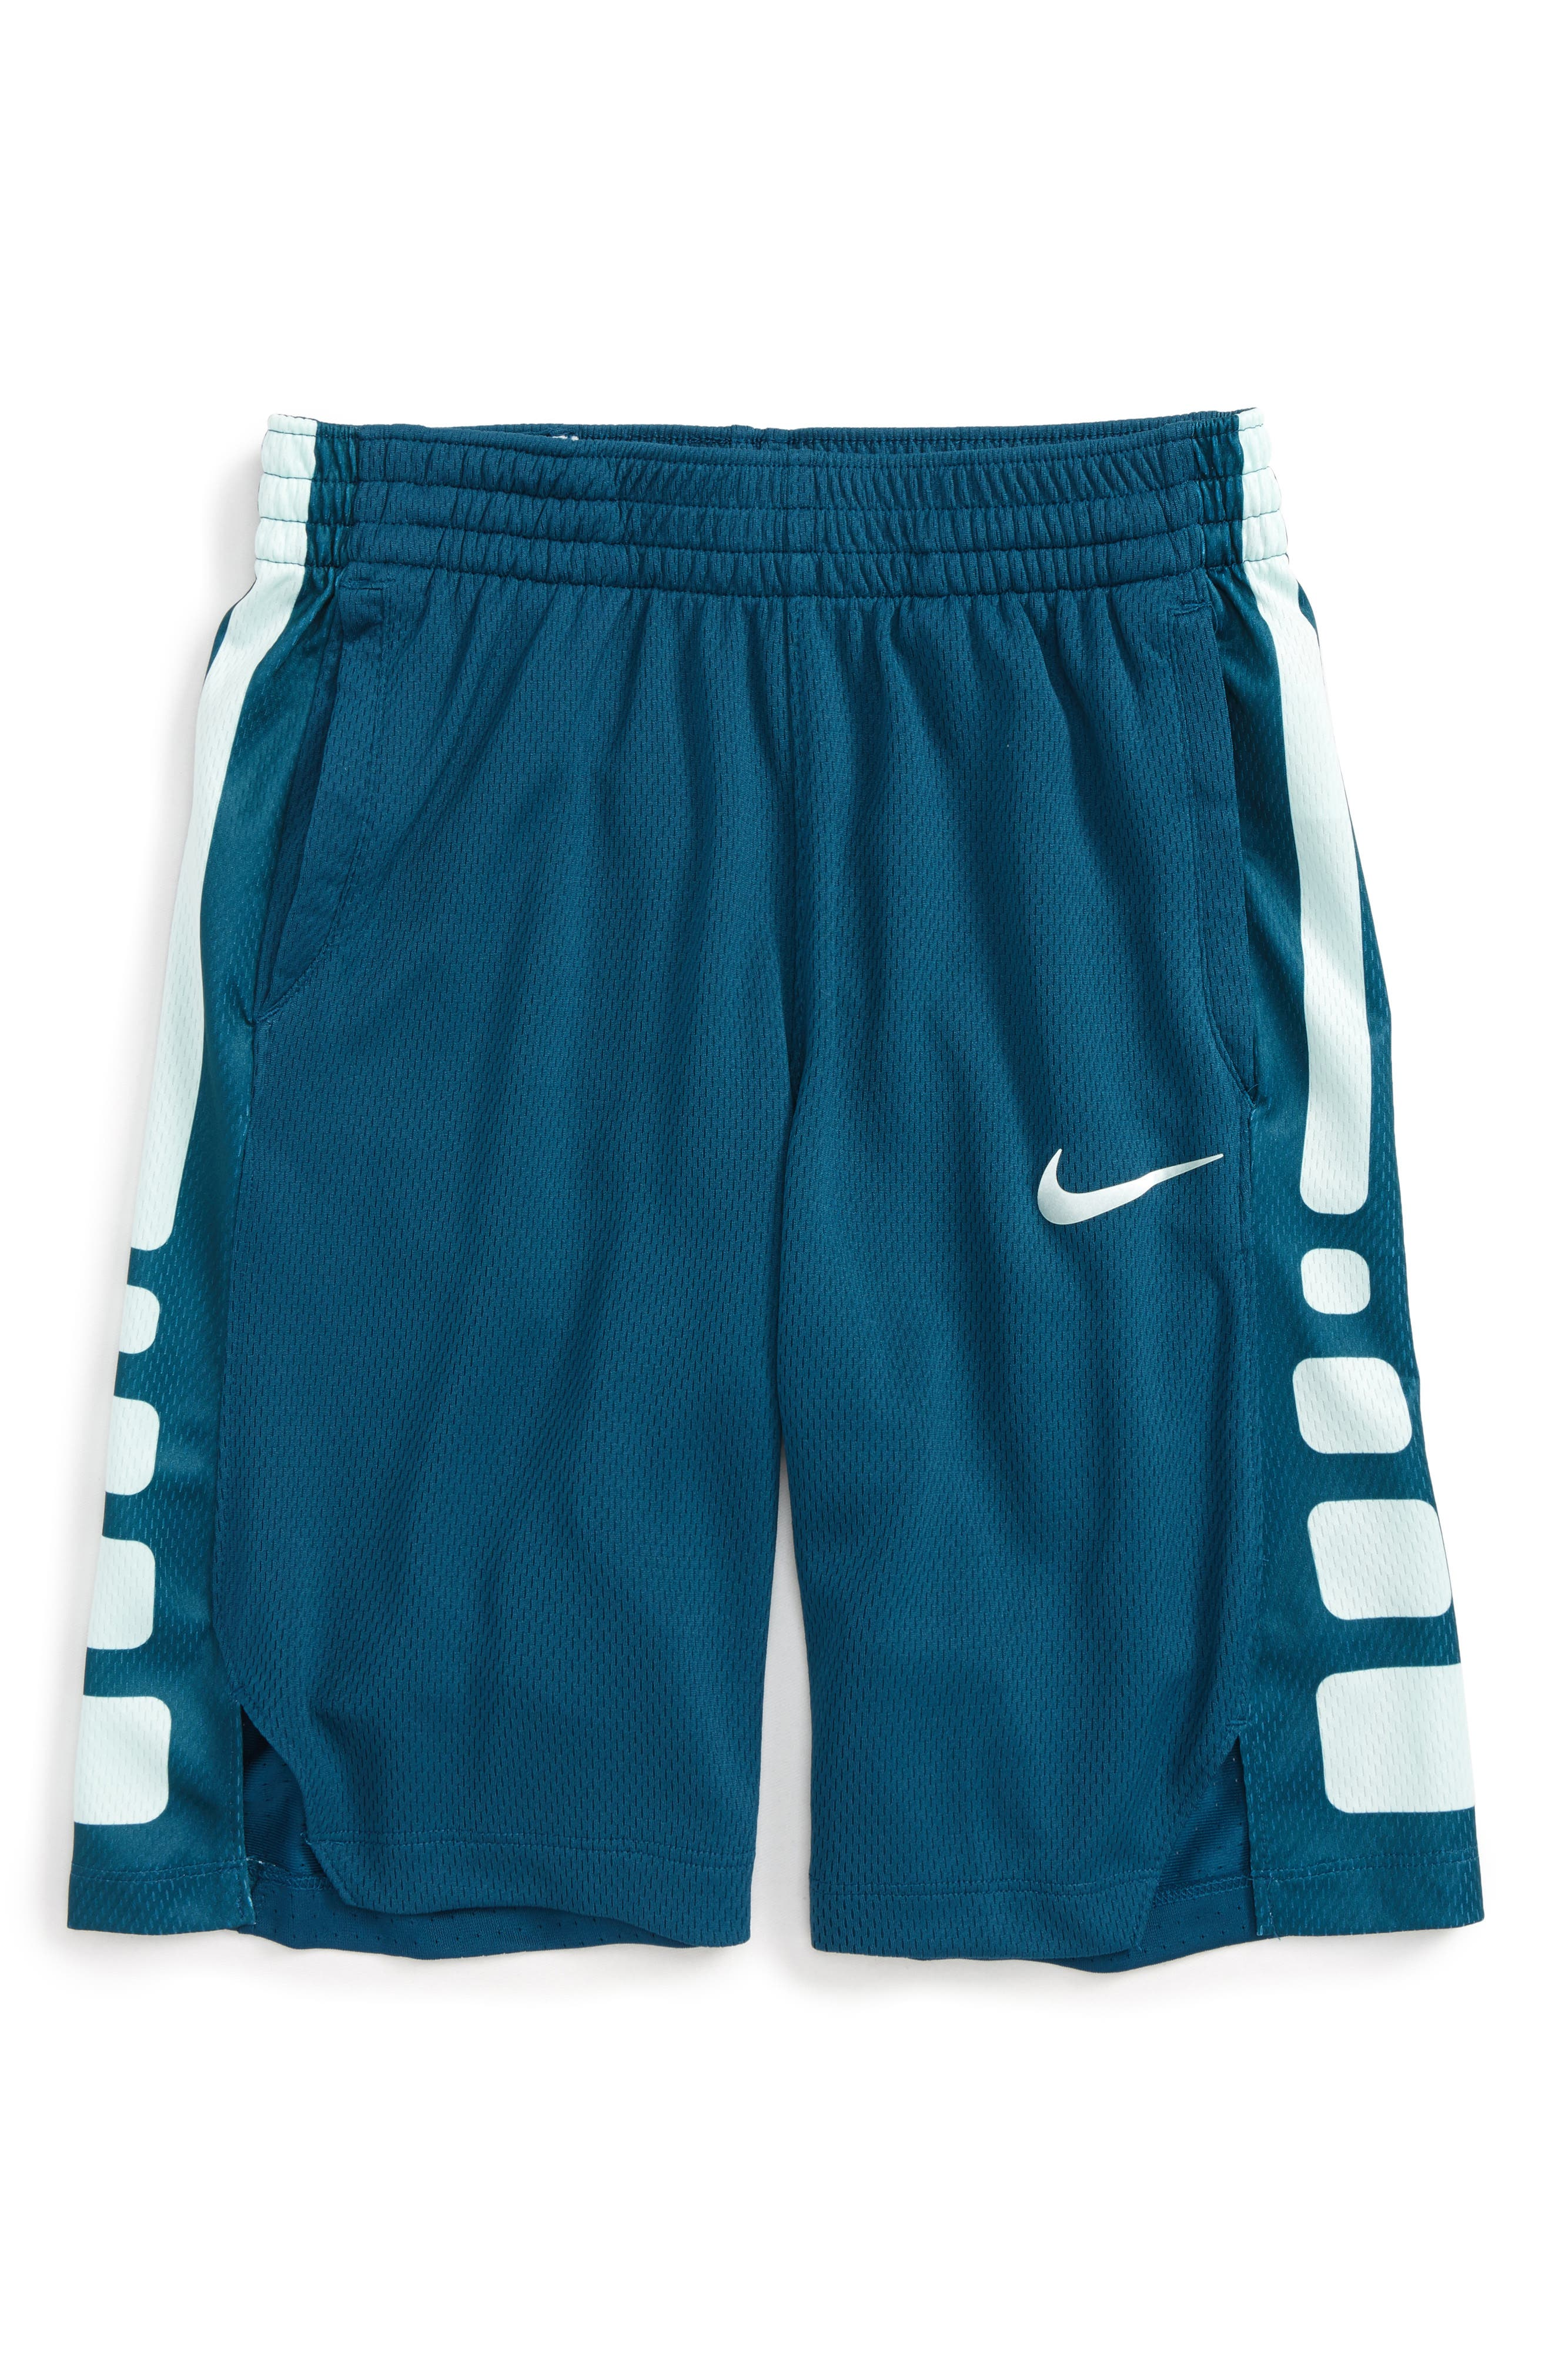 Dry Elite Basketball Shorts,                             Main thumbnail 40, color,